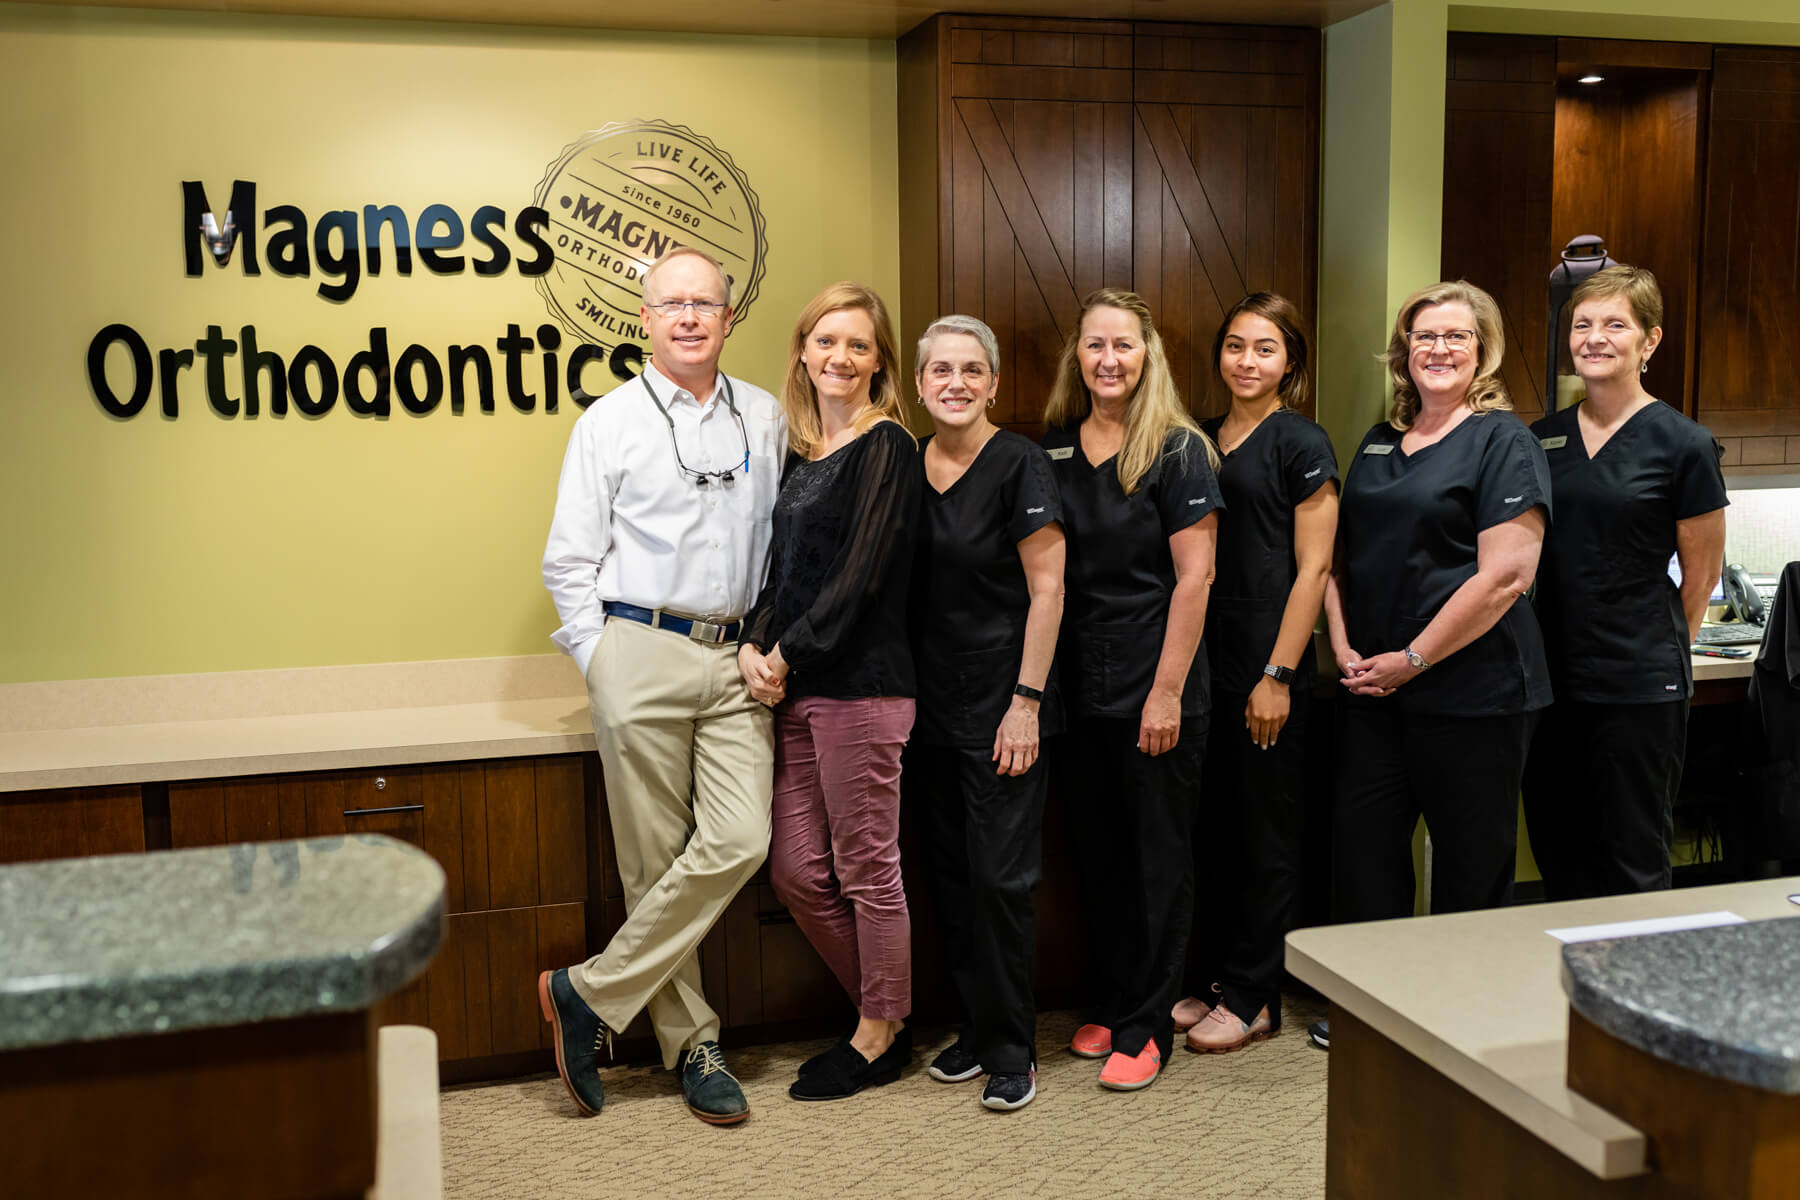 MSH_Magness-Orthodontics_138